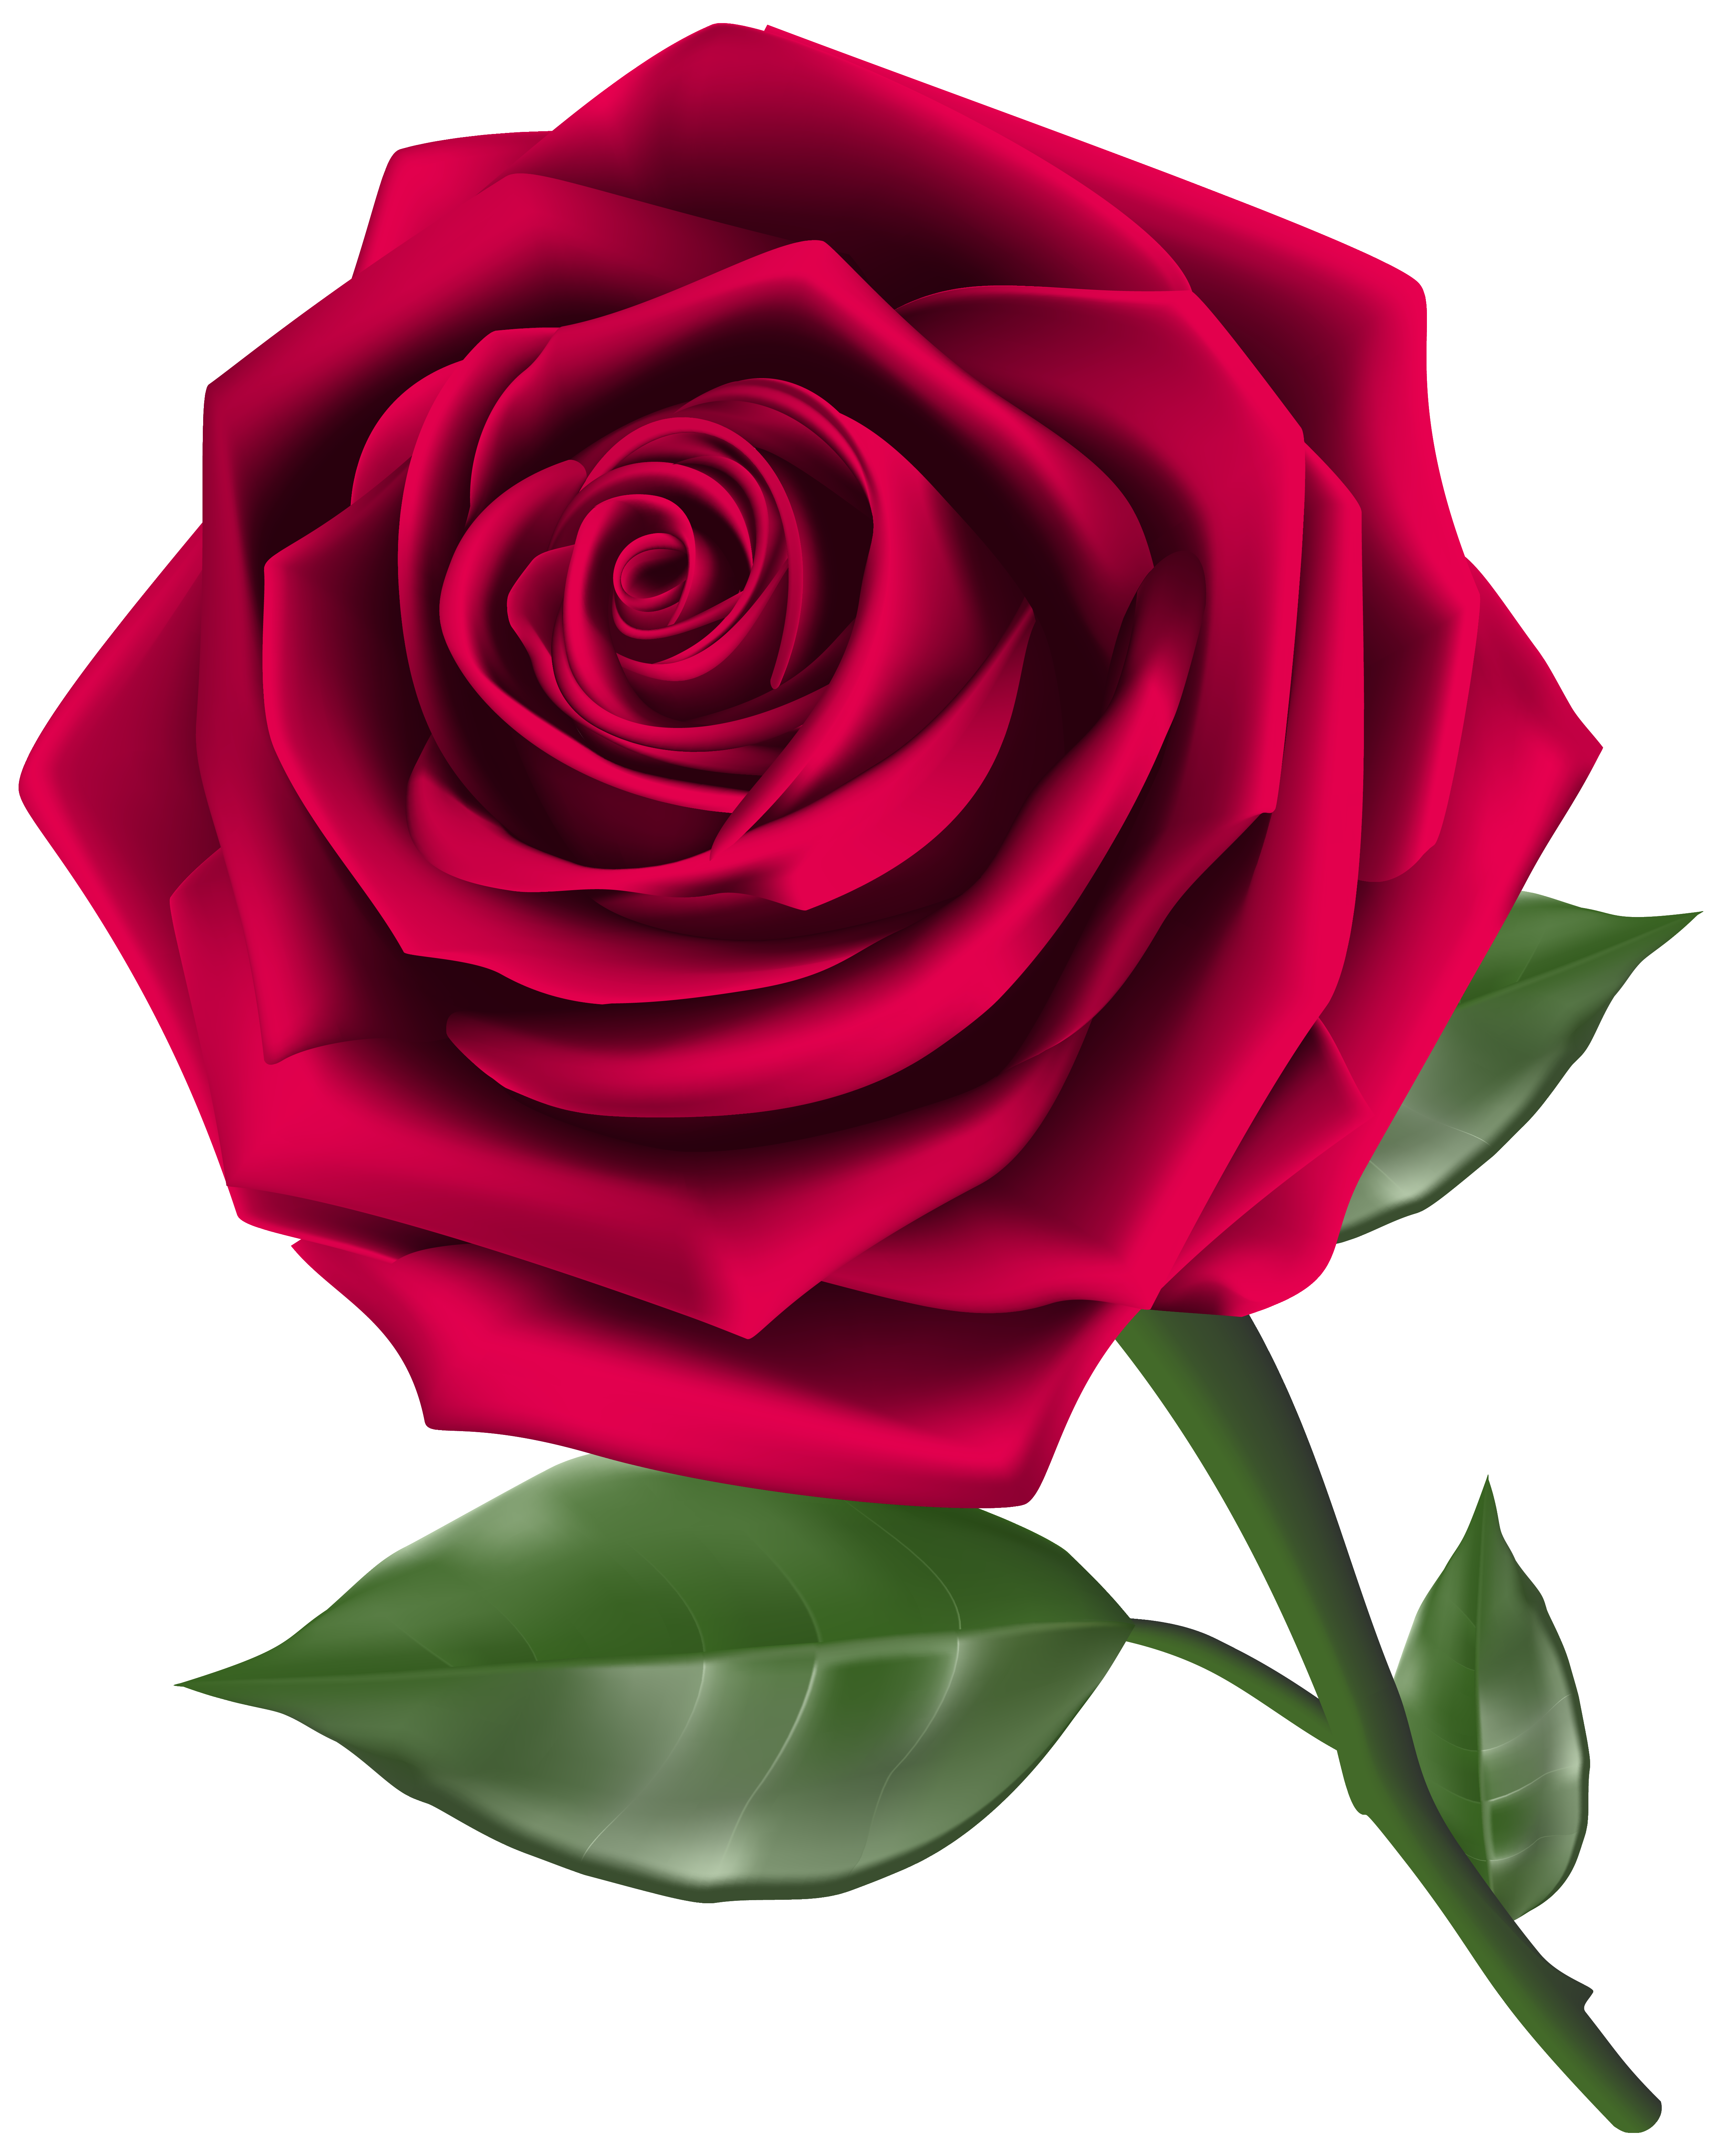 Steam Rose Clipart PNG Image.